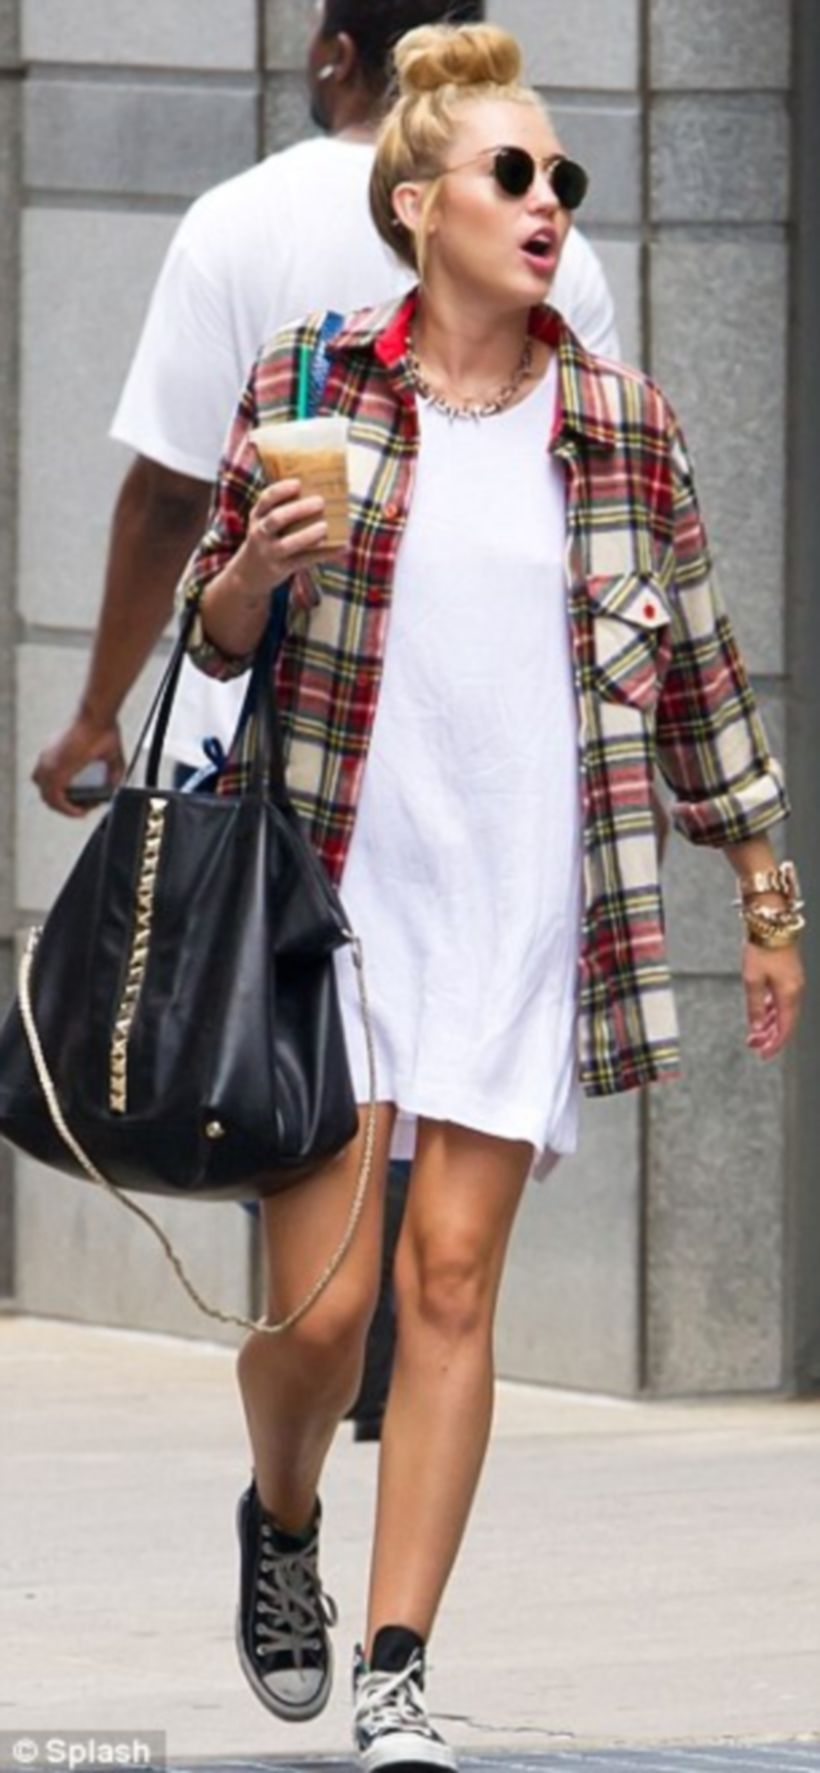 Cute oversized t shirt outfit styles 17